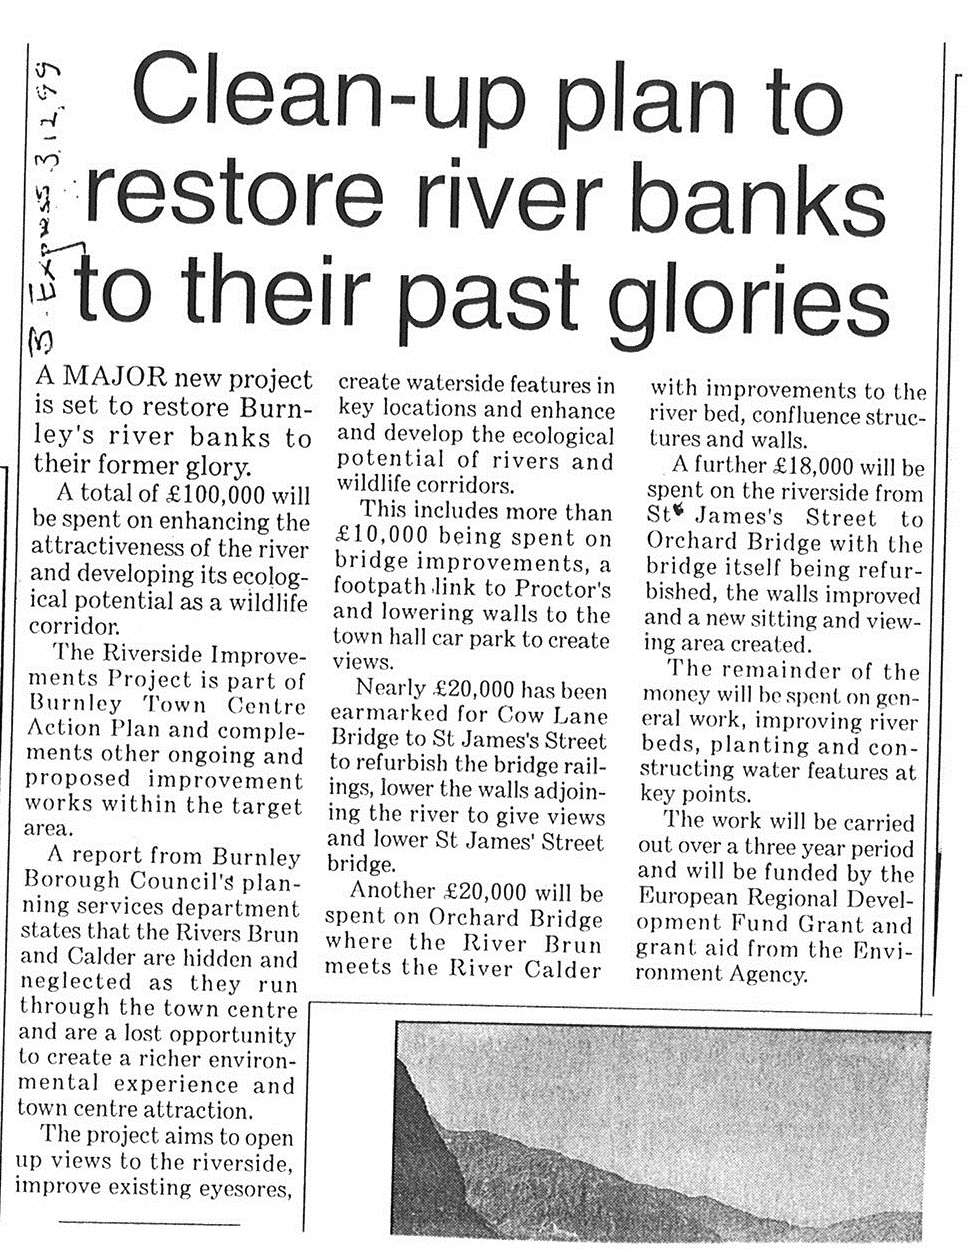 1999 Dec 3 Clean-up plan to restore river banks to their past glories.jpg